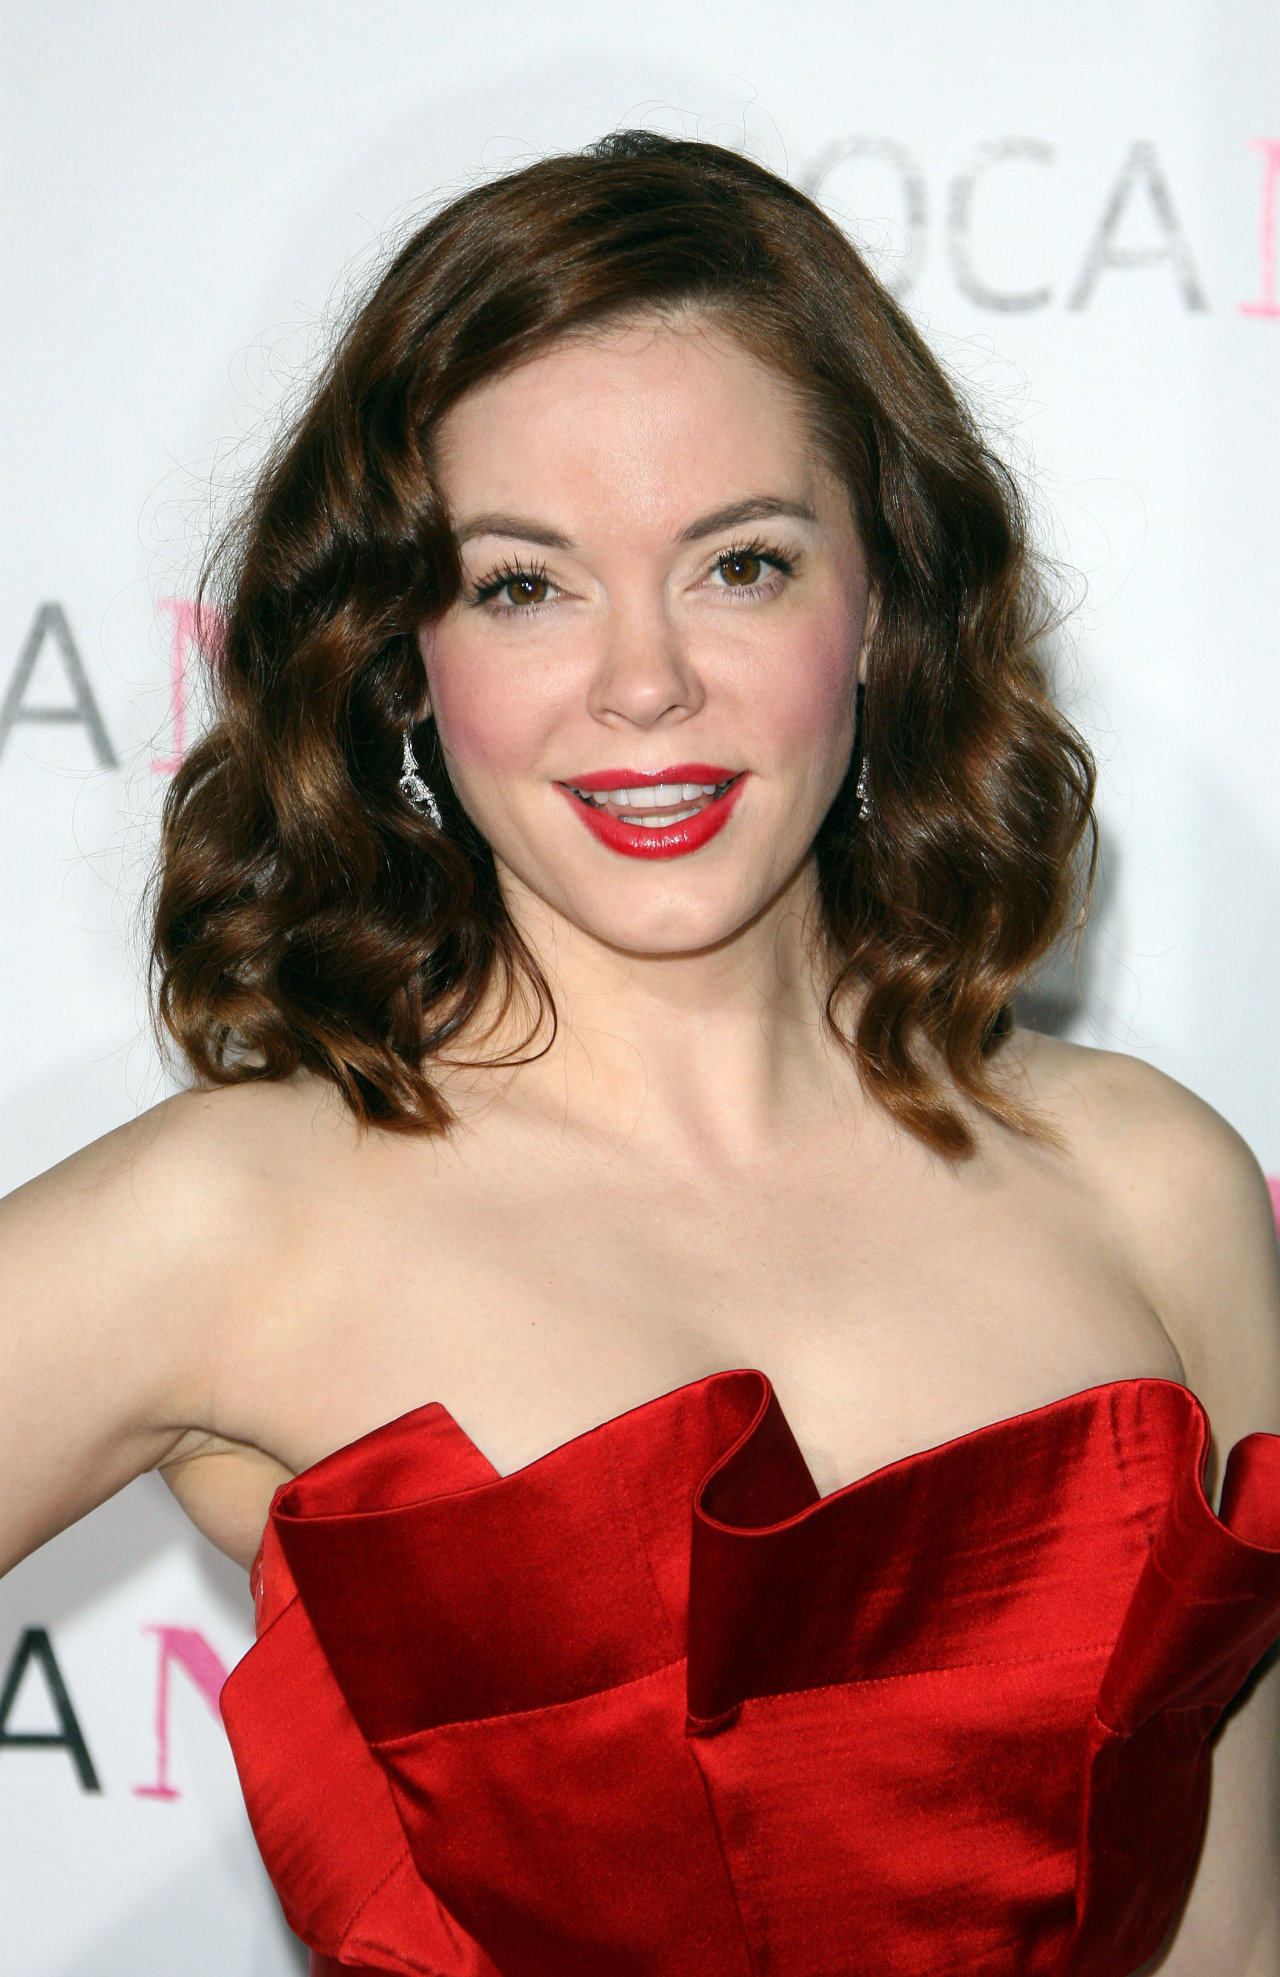 rose mcgowan pictures - photo #40